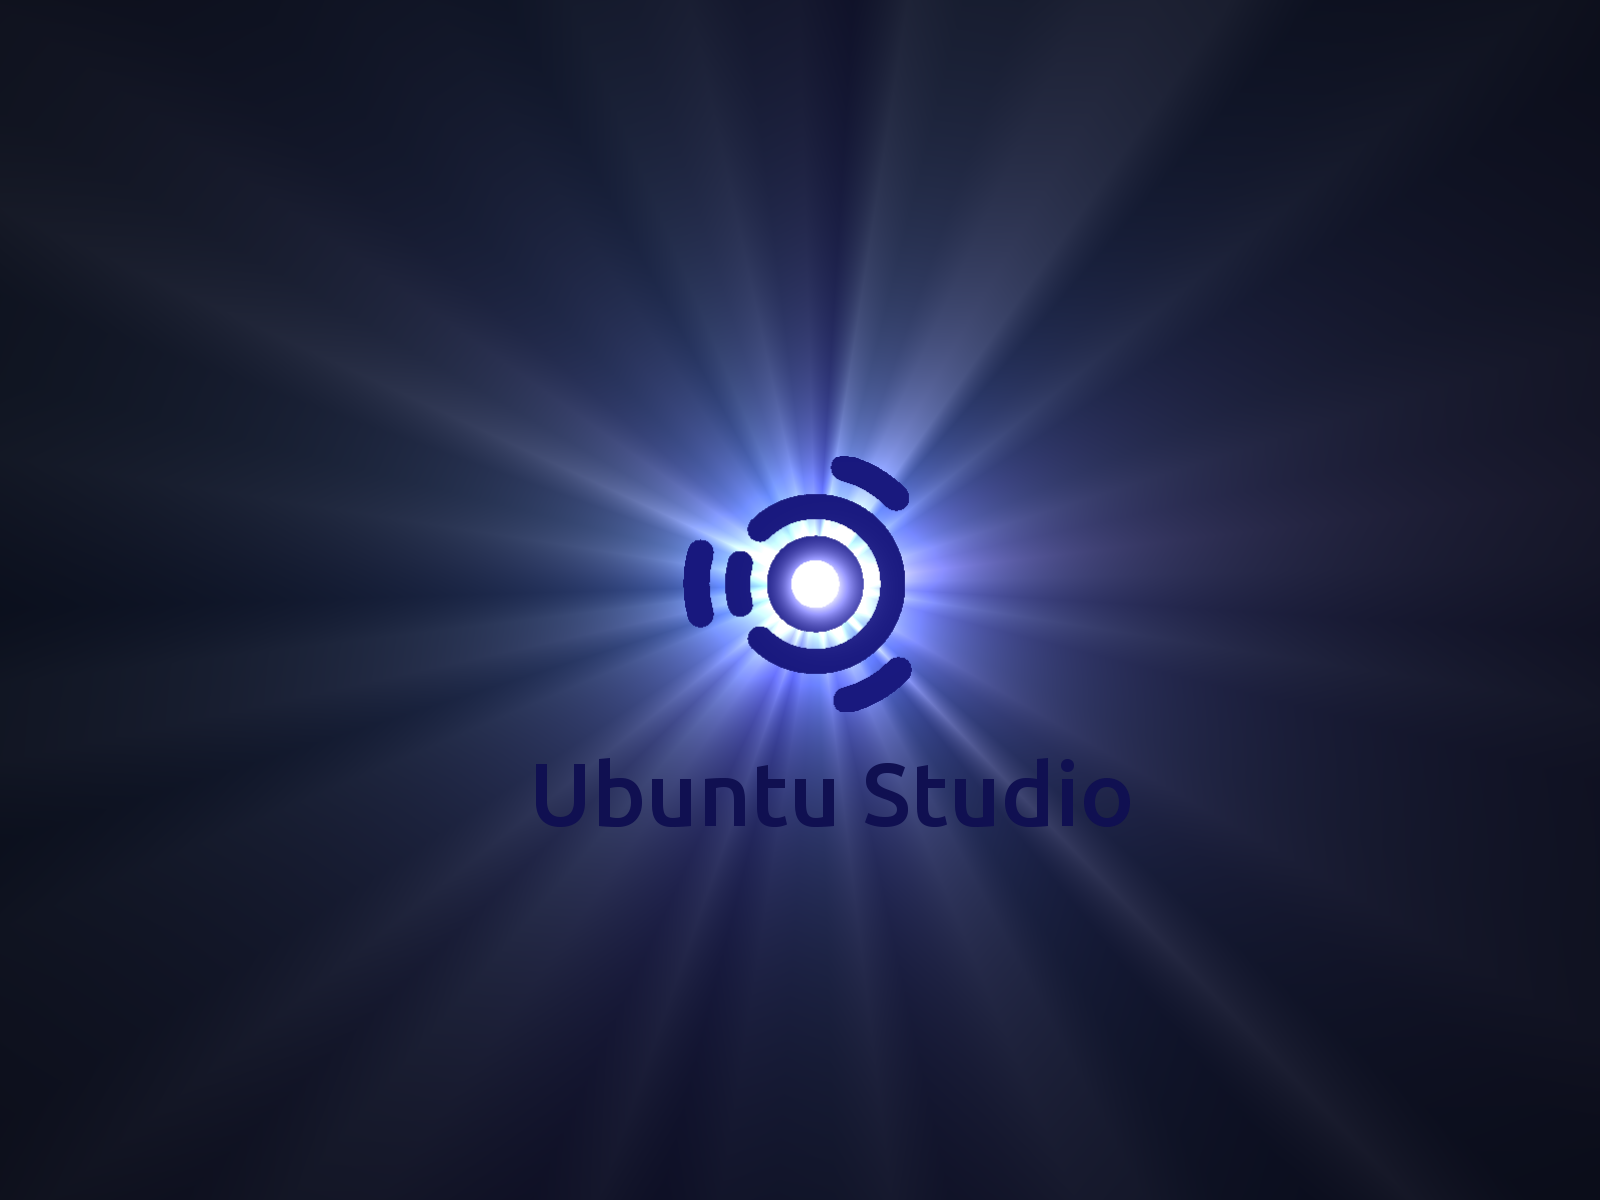 Glenn's Projects: New Ubuntu Studio wallpaper artwork Ubuntu Logo